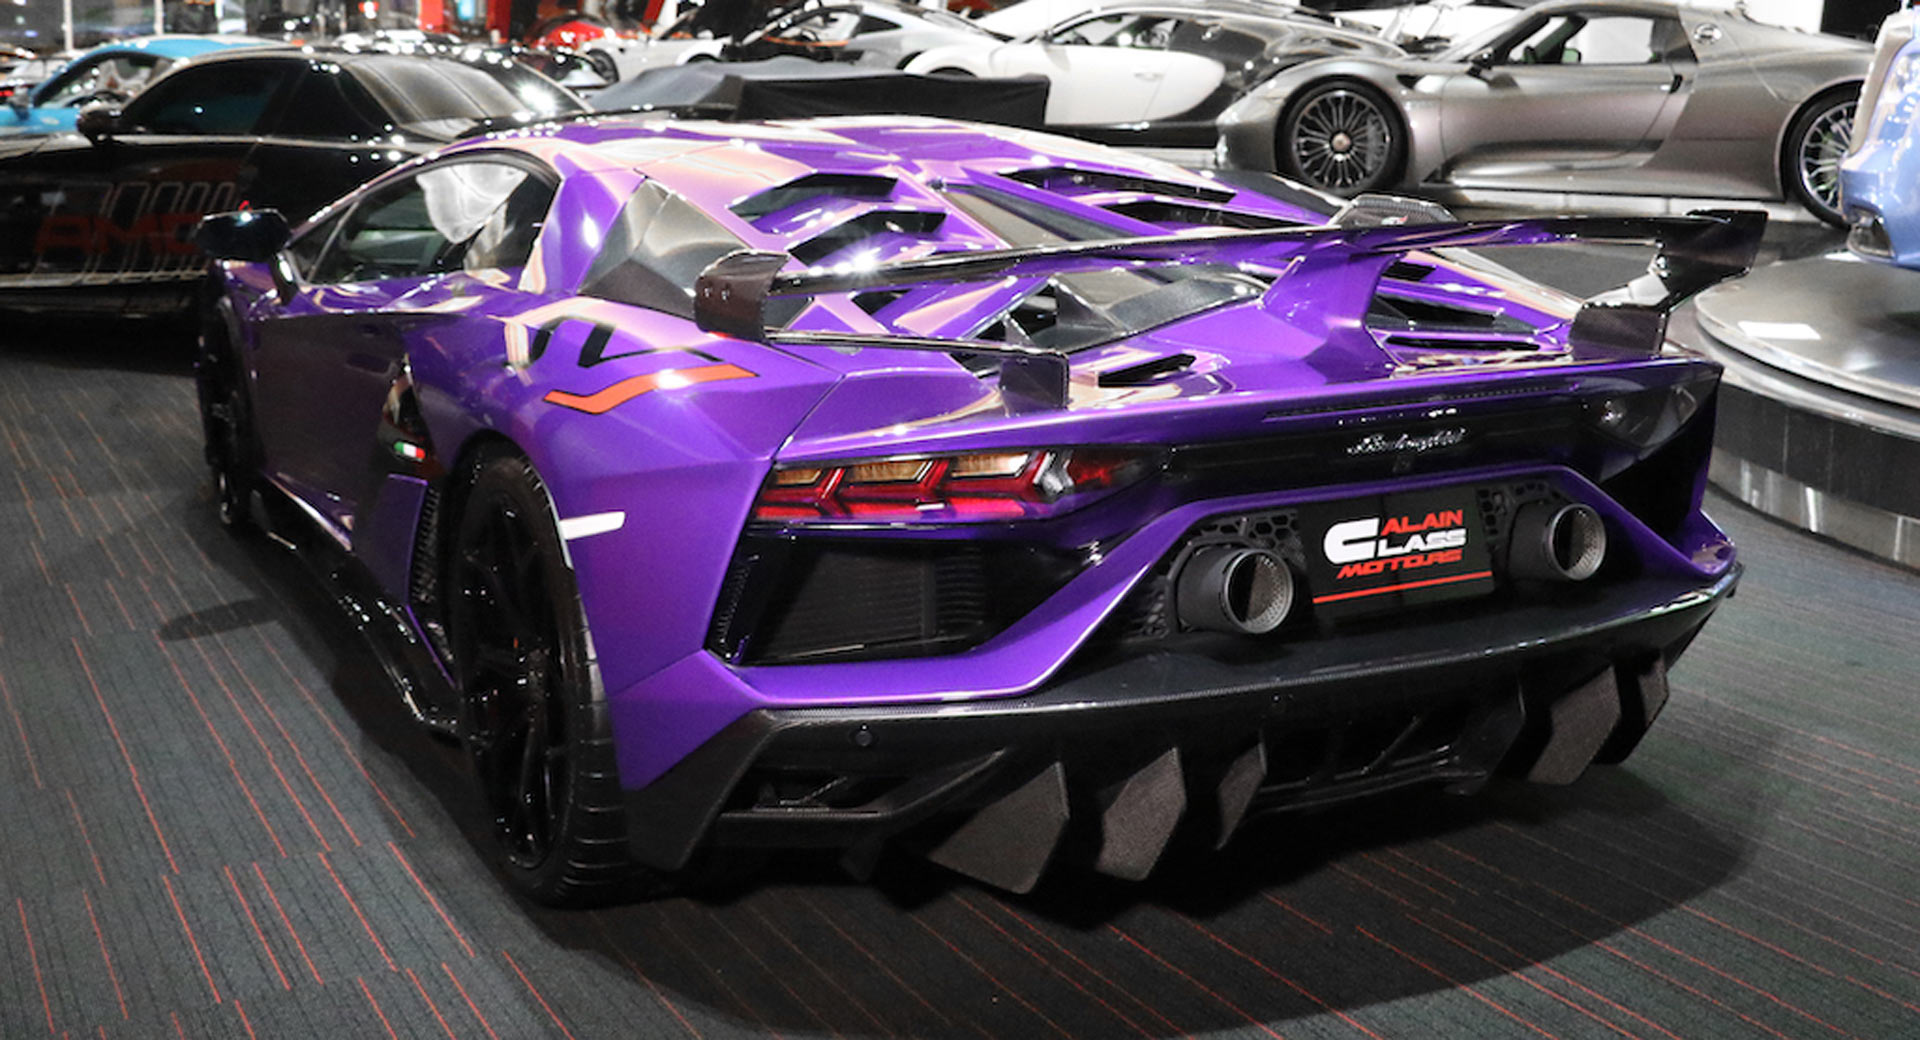 This Lamborghini Aventador Svj Stands Out Even In Supercar Infested